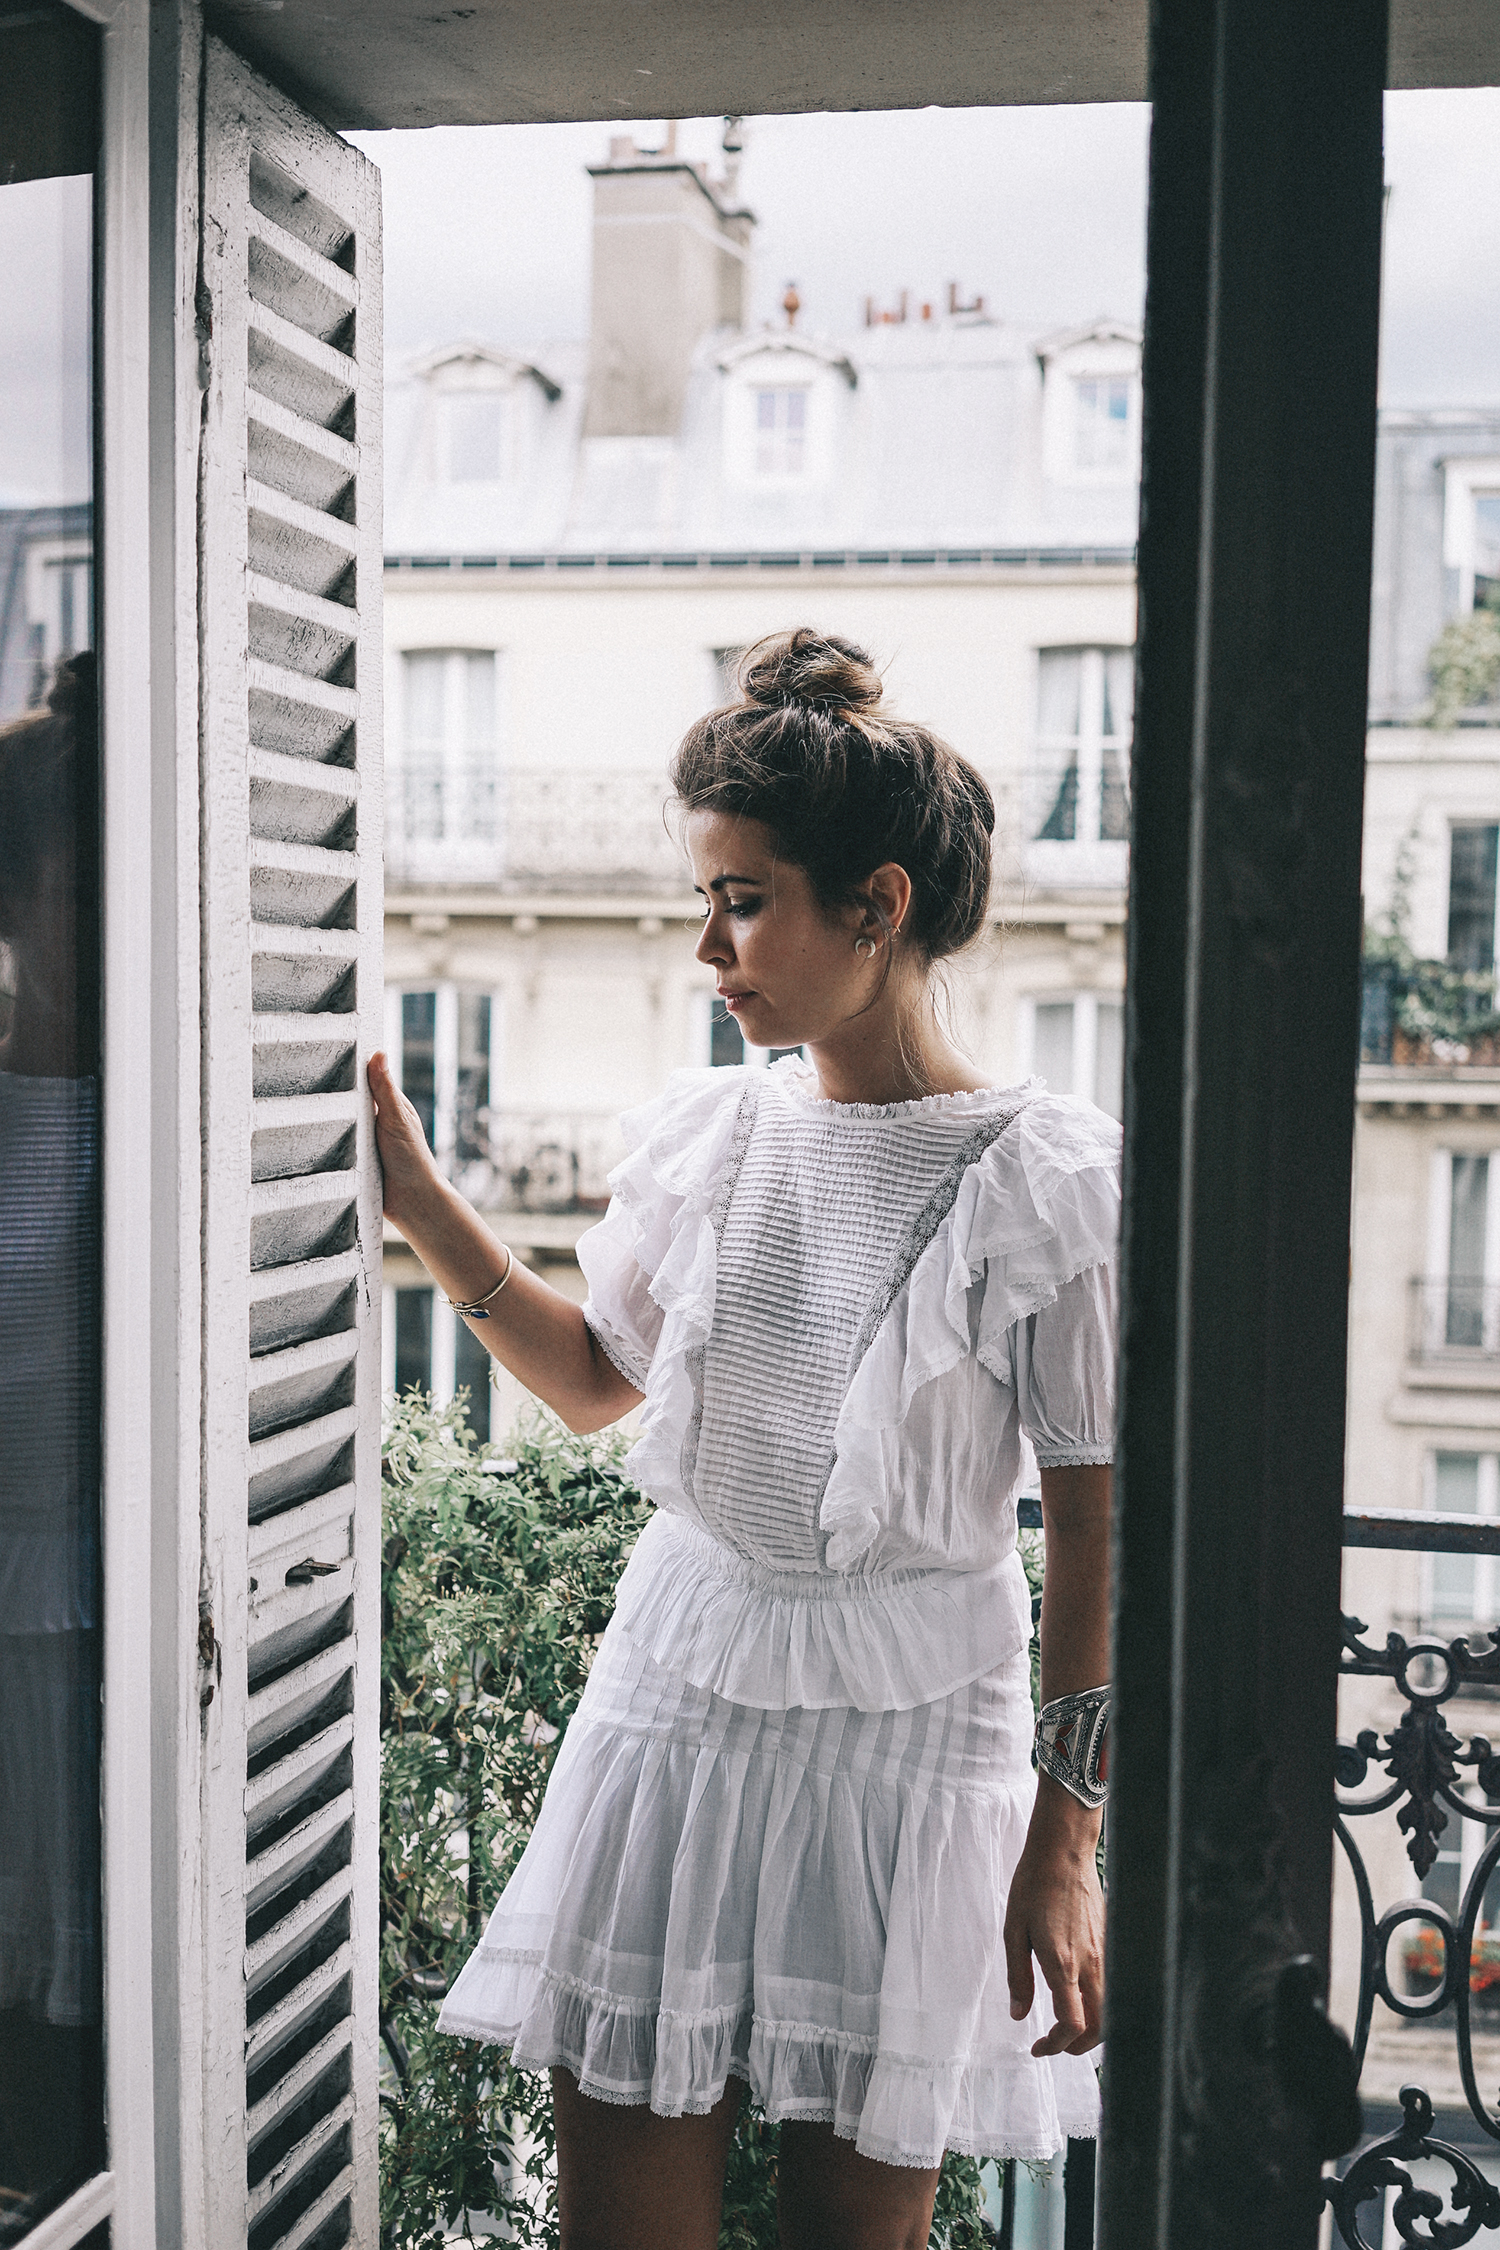 Home_Away-Isabel_Marant_Dress-Outfit-Paris-Collage_Vintage-8